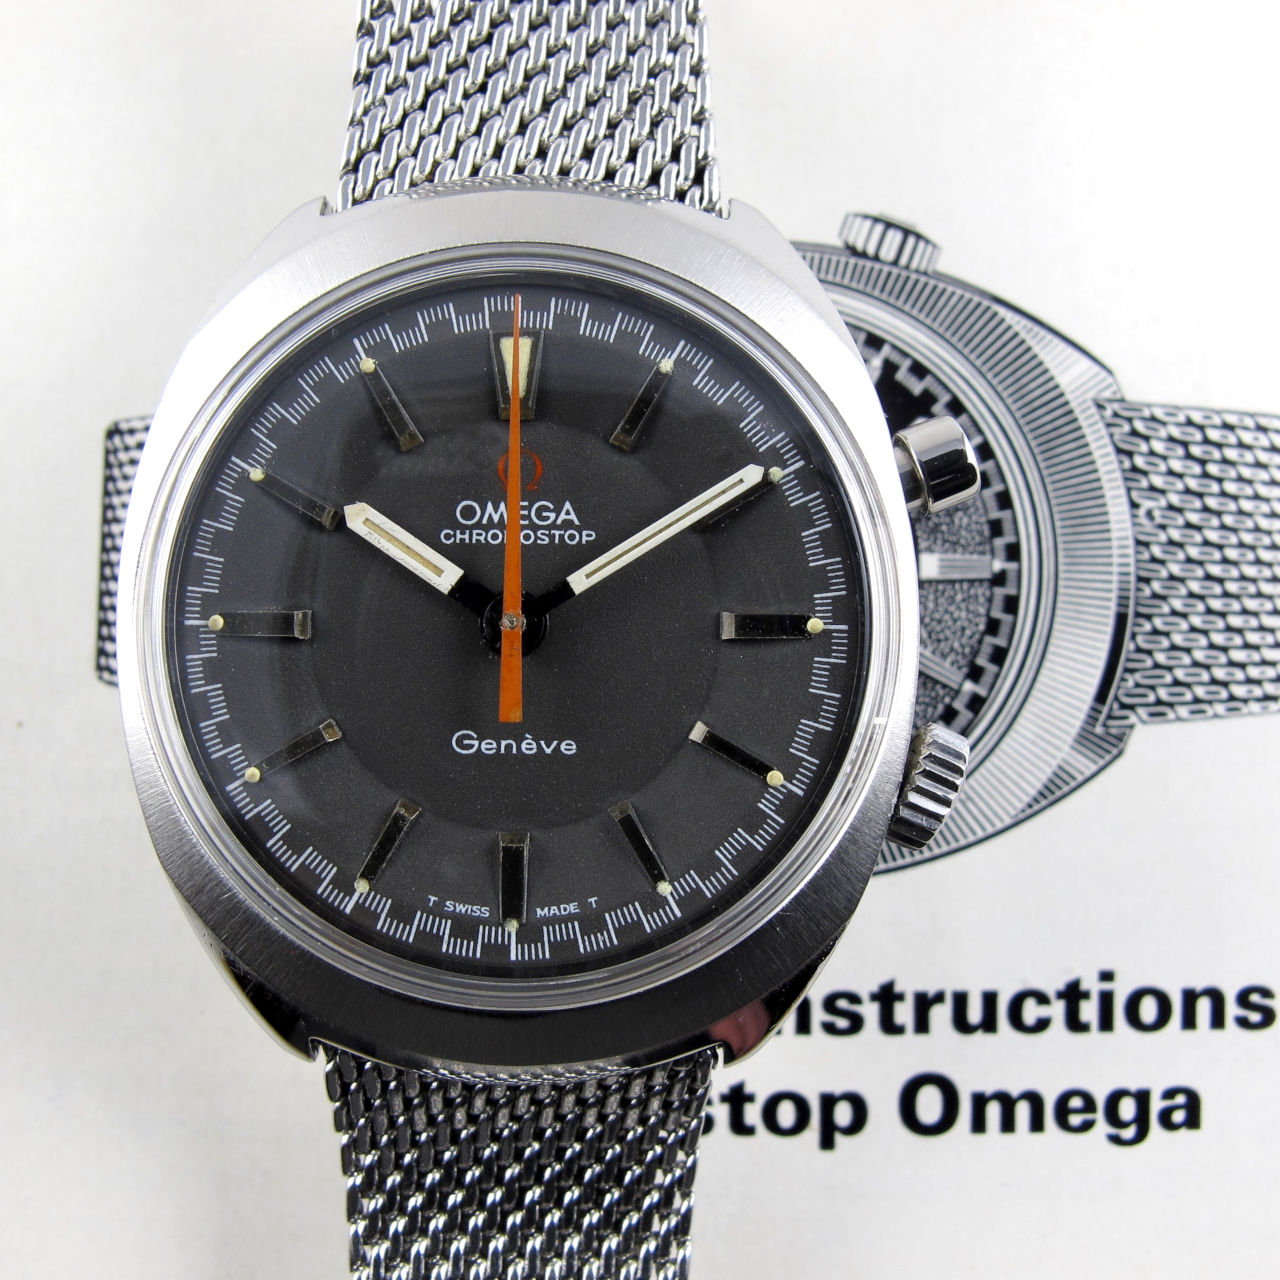 Omega Chronostop Ref. 145.009 steel vintage wristwatch, sold in 1969